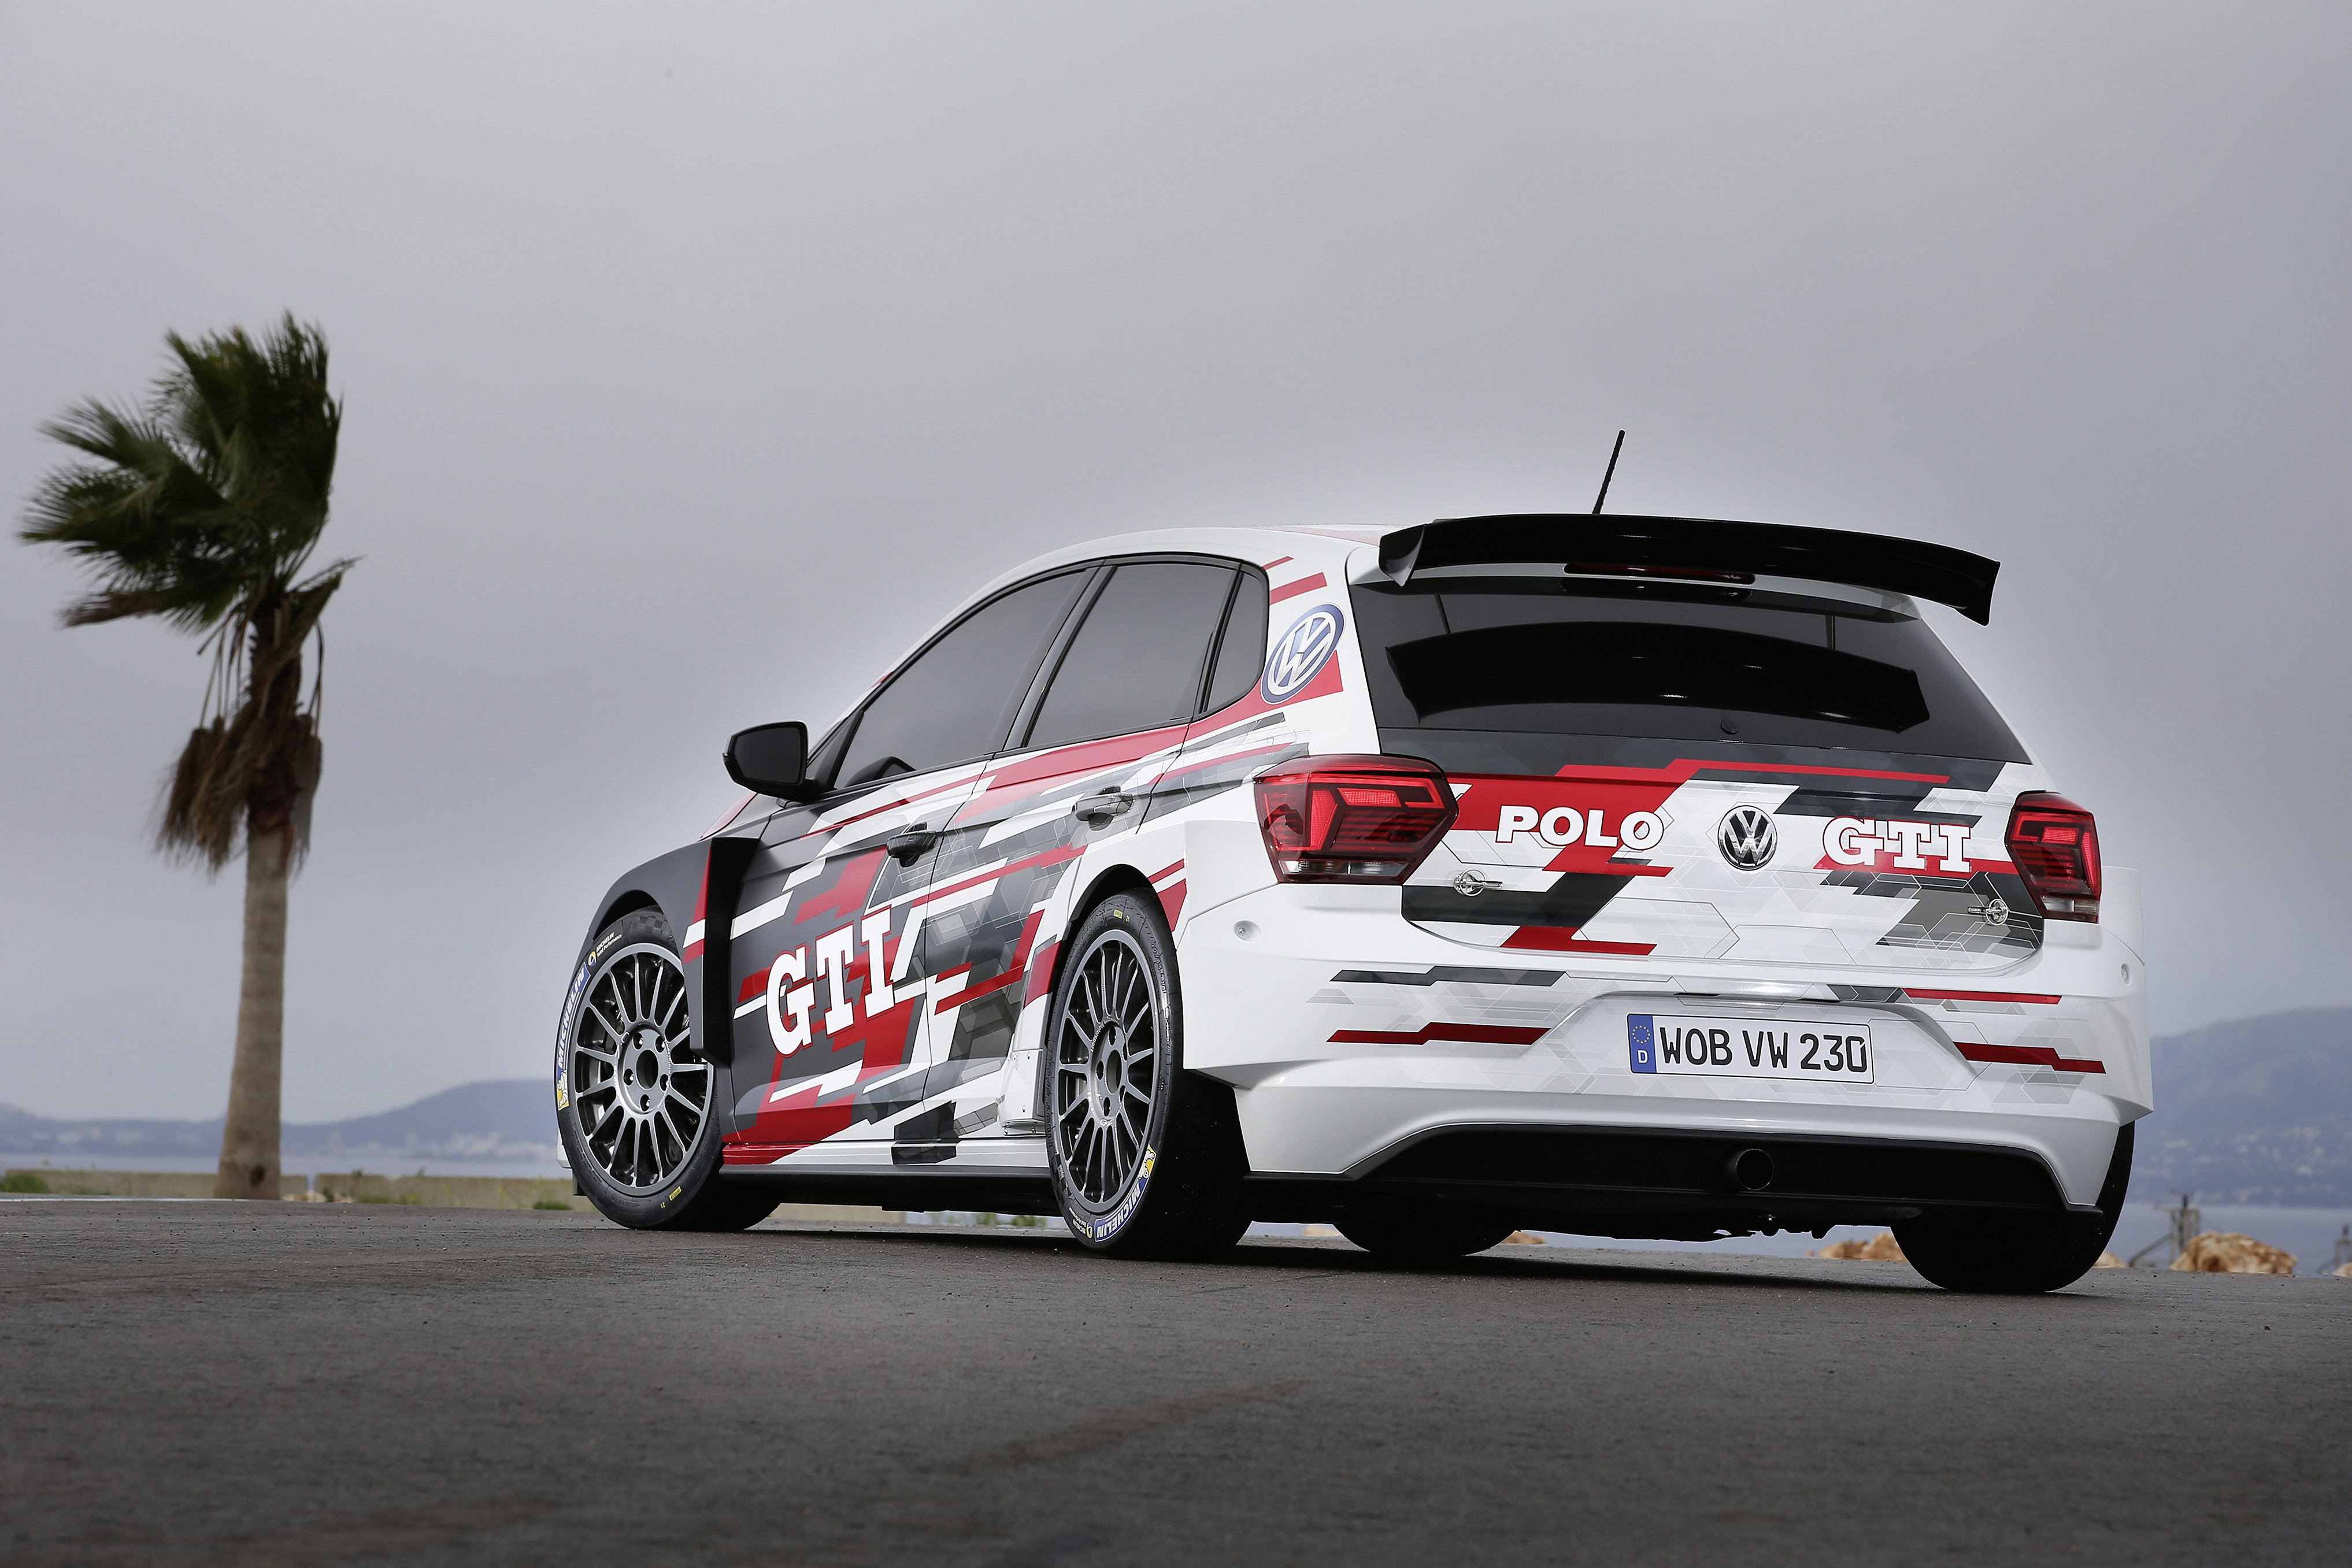 Volkswagen Polo Gti R5 Customer Race Car Unveiled